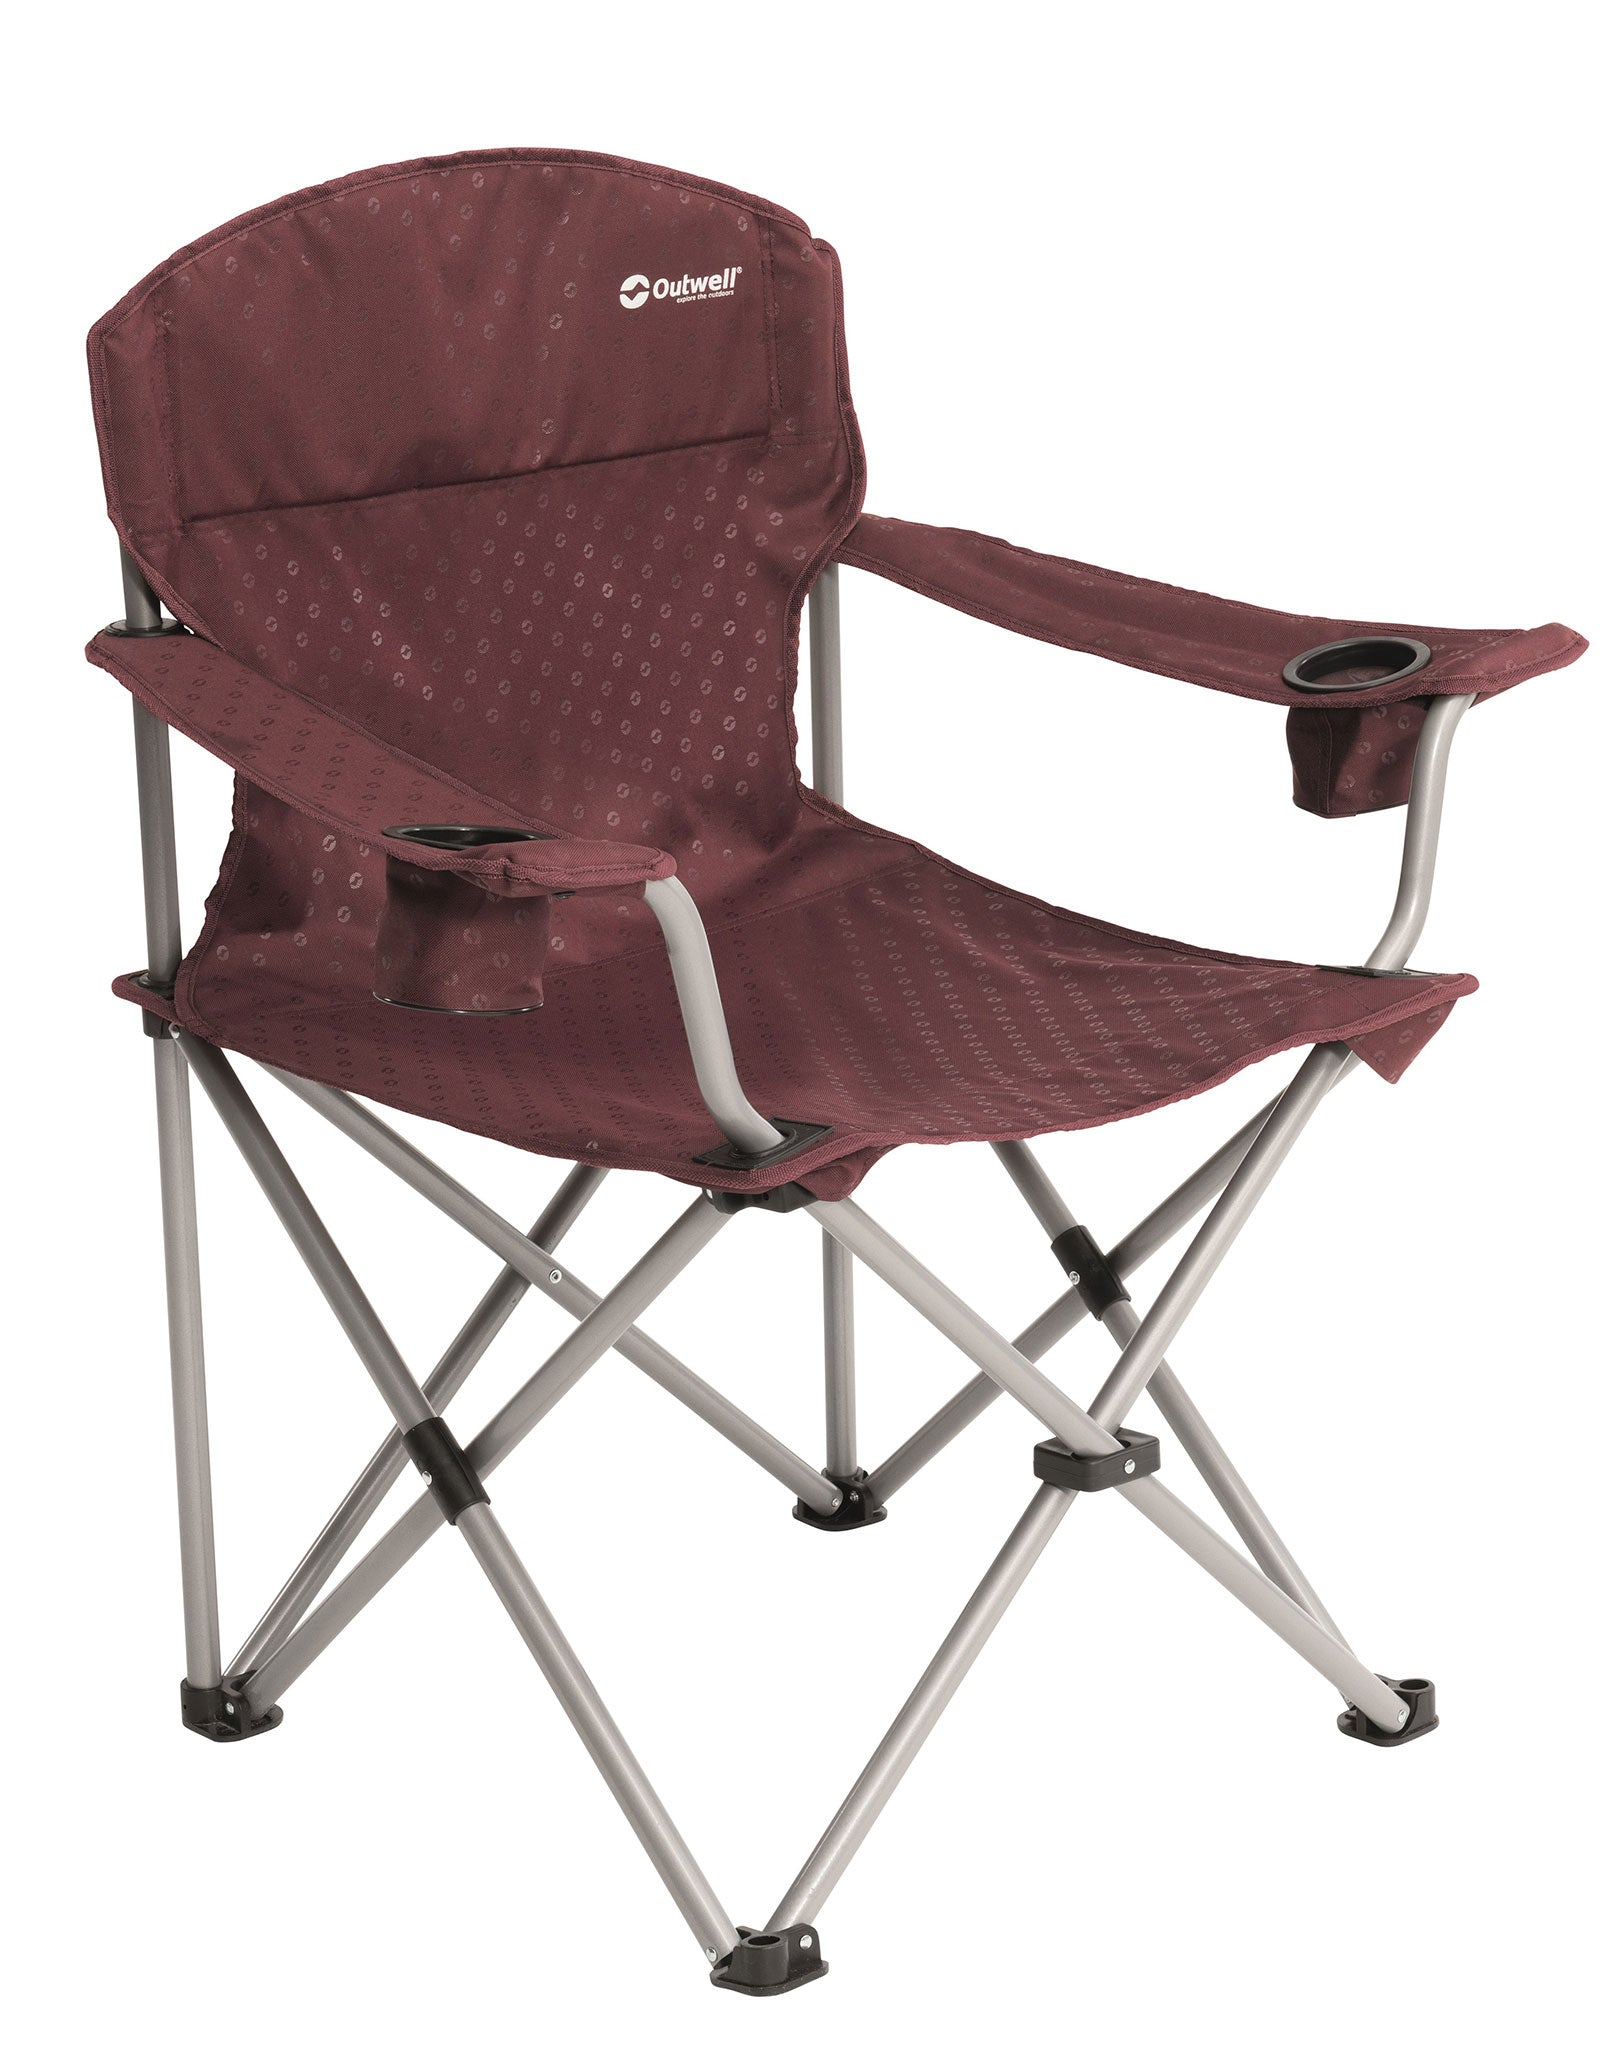 Image of Outwell Catamarca Arm Chair XL - Claret